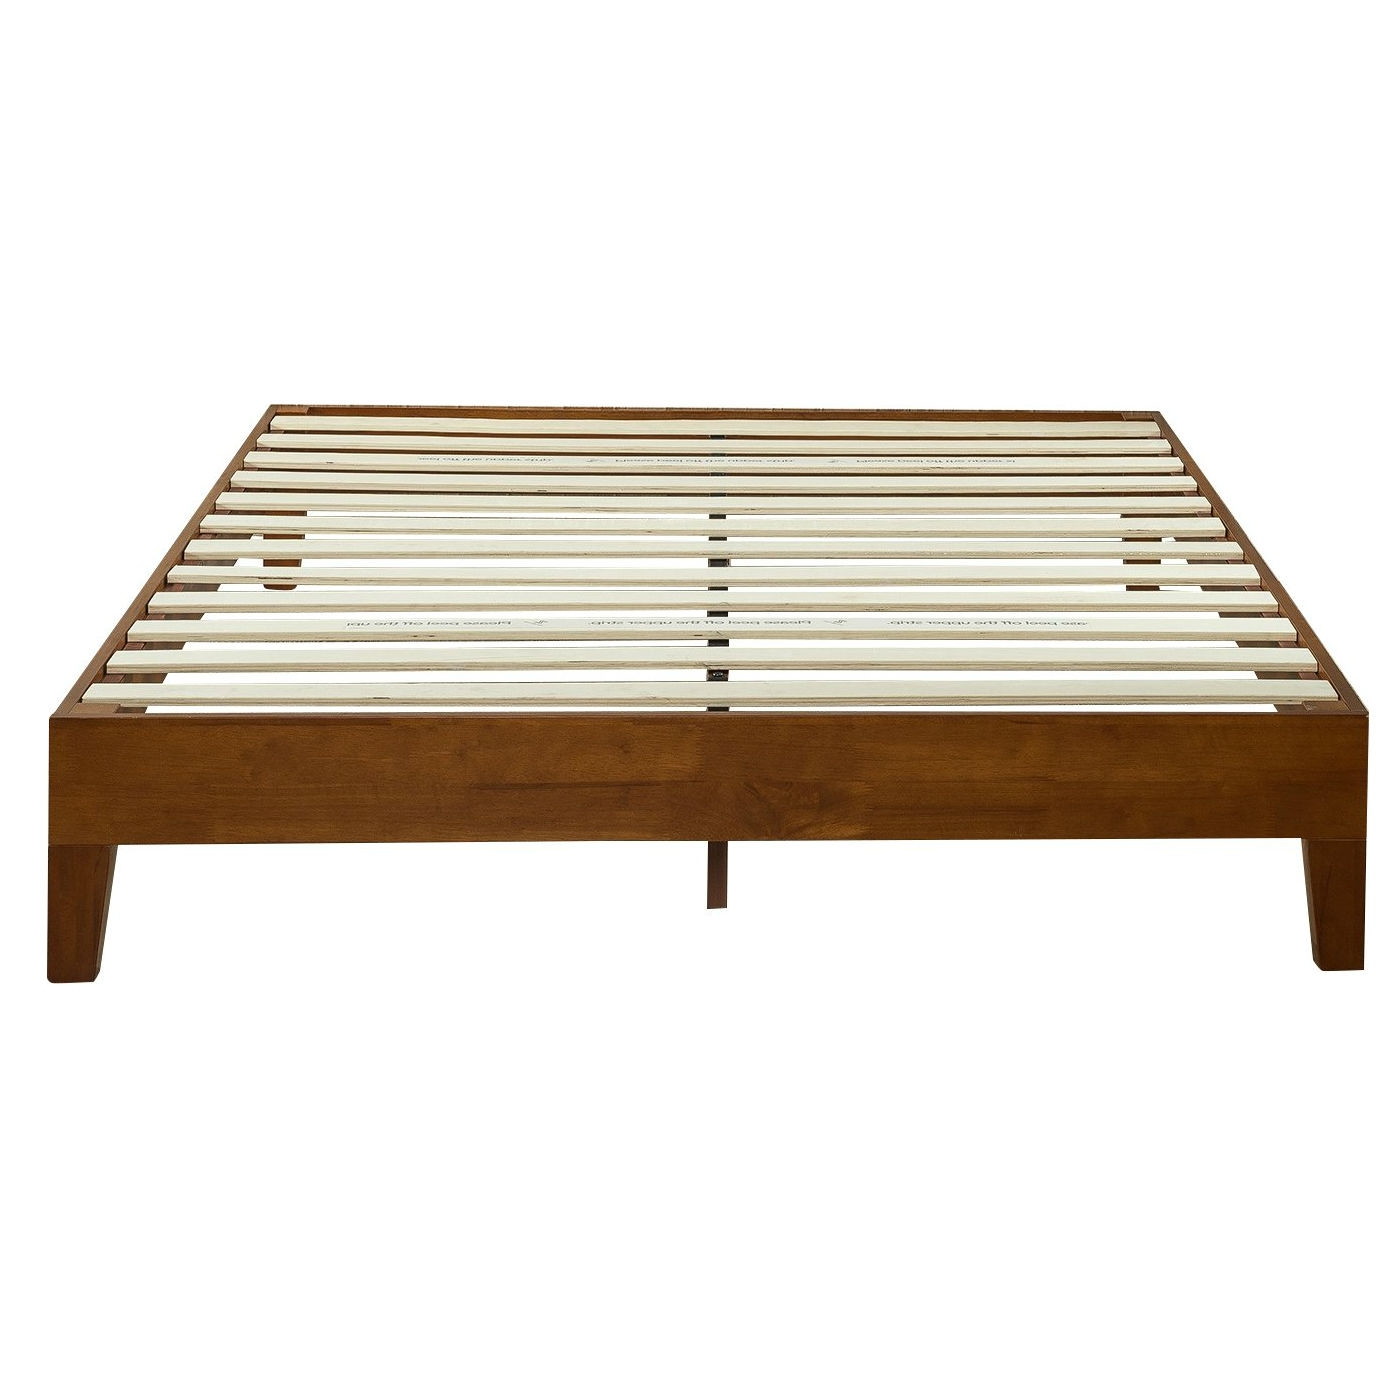 full size low profile platform bed frame in cherry wood finish - Cherry Bed Frame